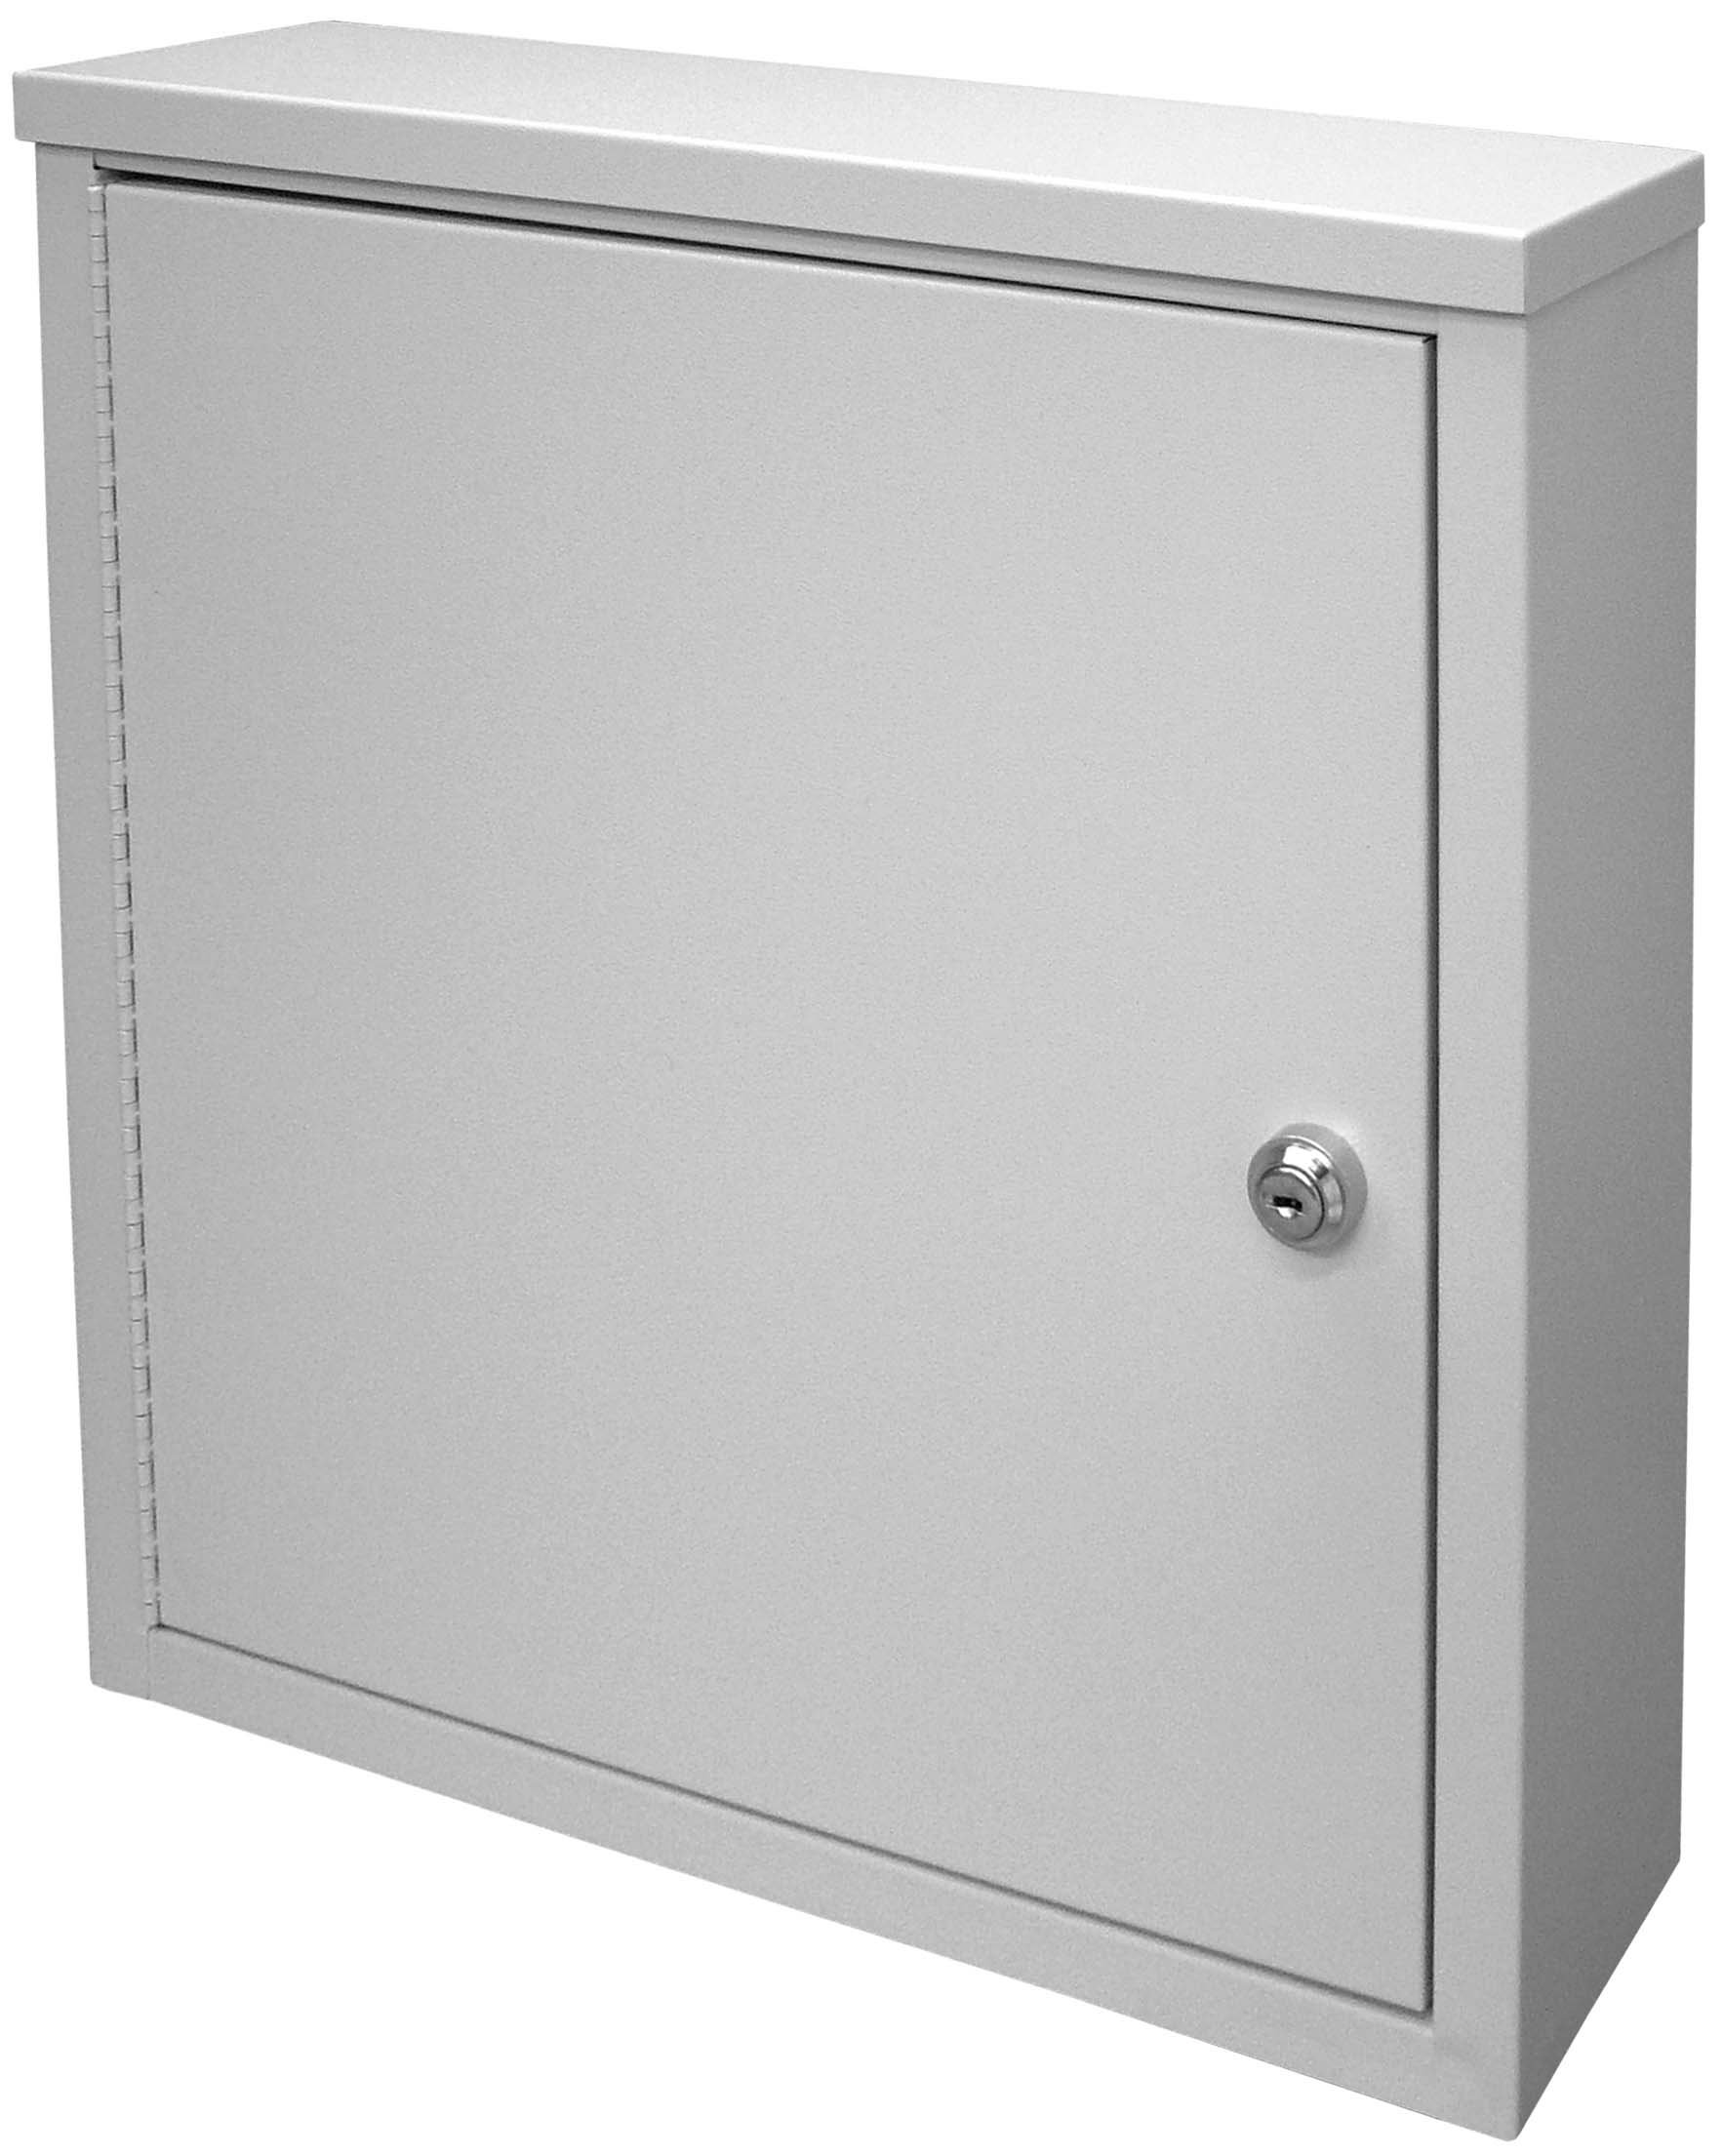 Omnimed Small Wall Storage Cabinets 16